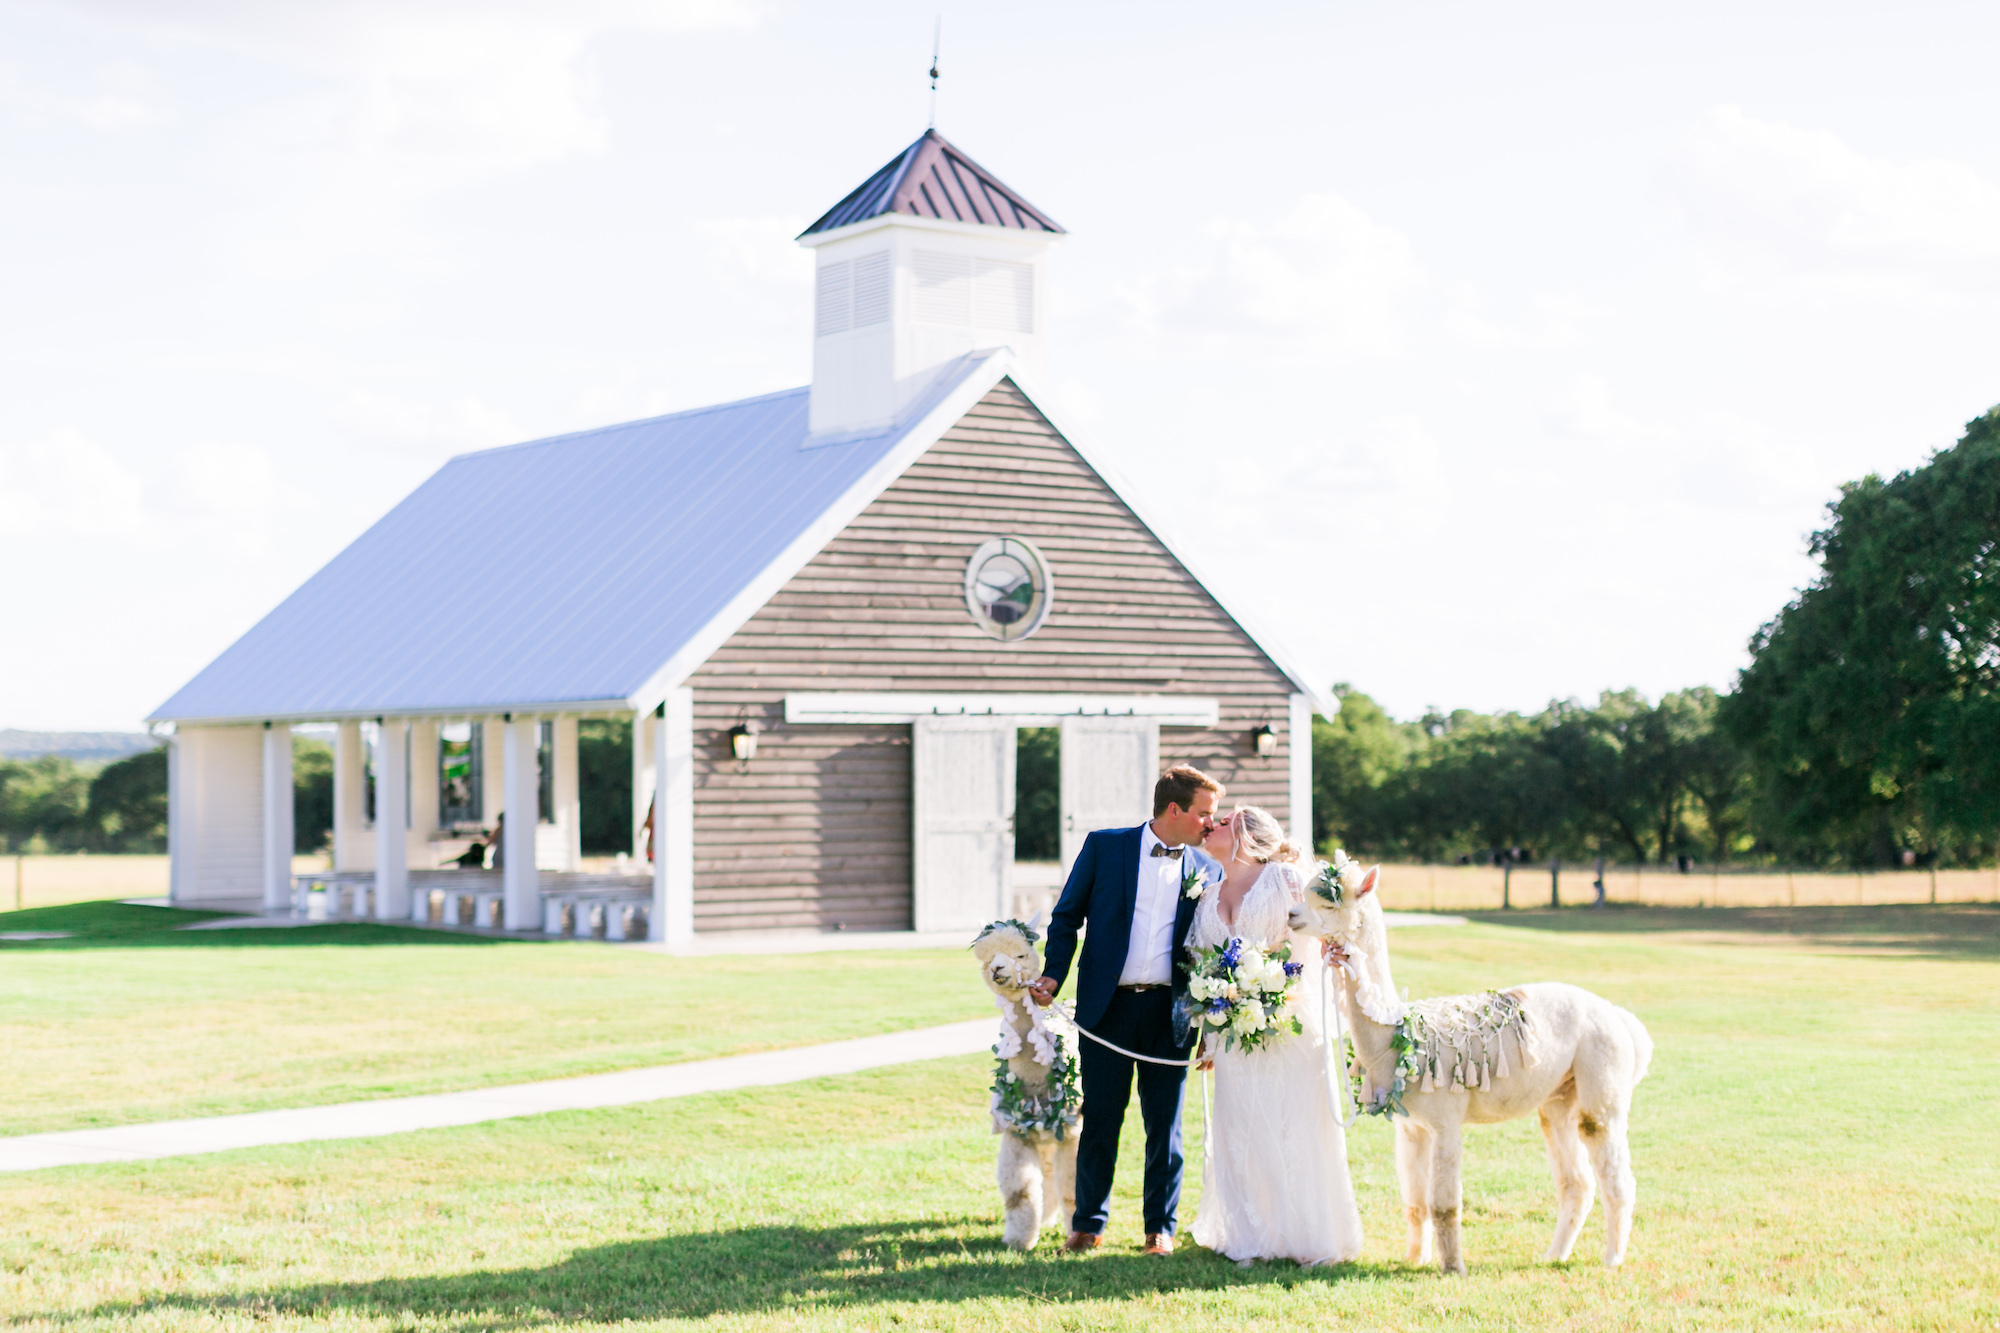 Wedding at Featherstone Ranch in Fredericksburg Texas by Lori Blythe Photography